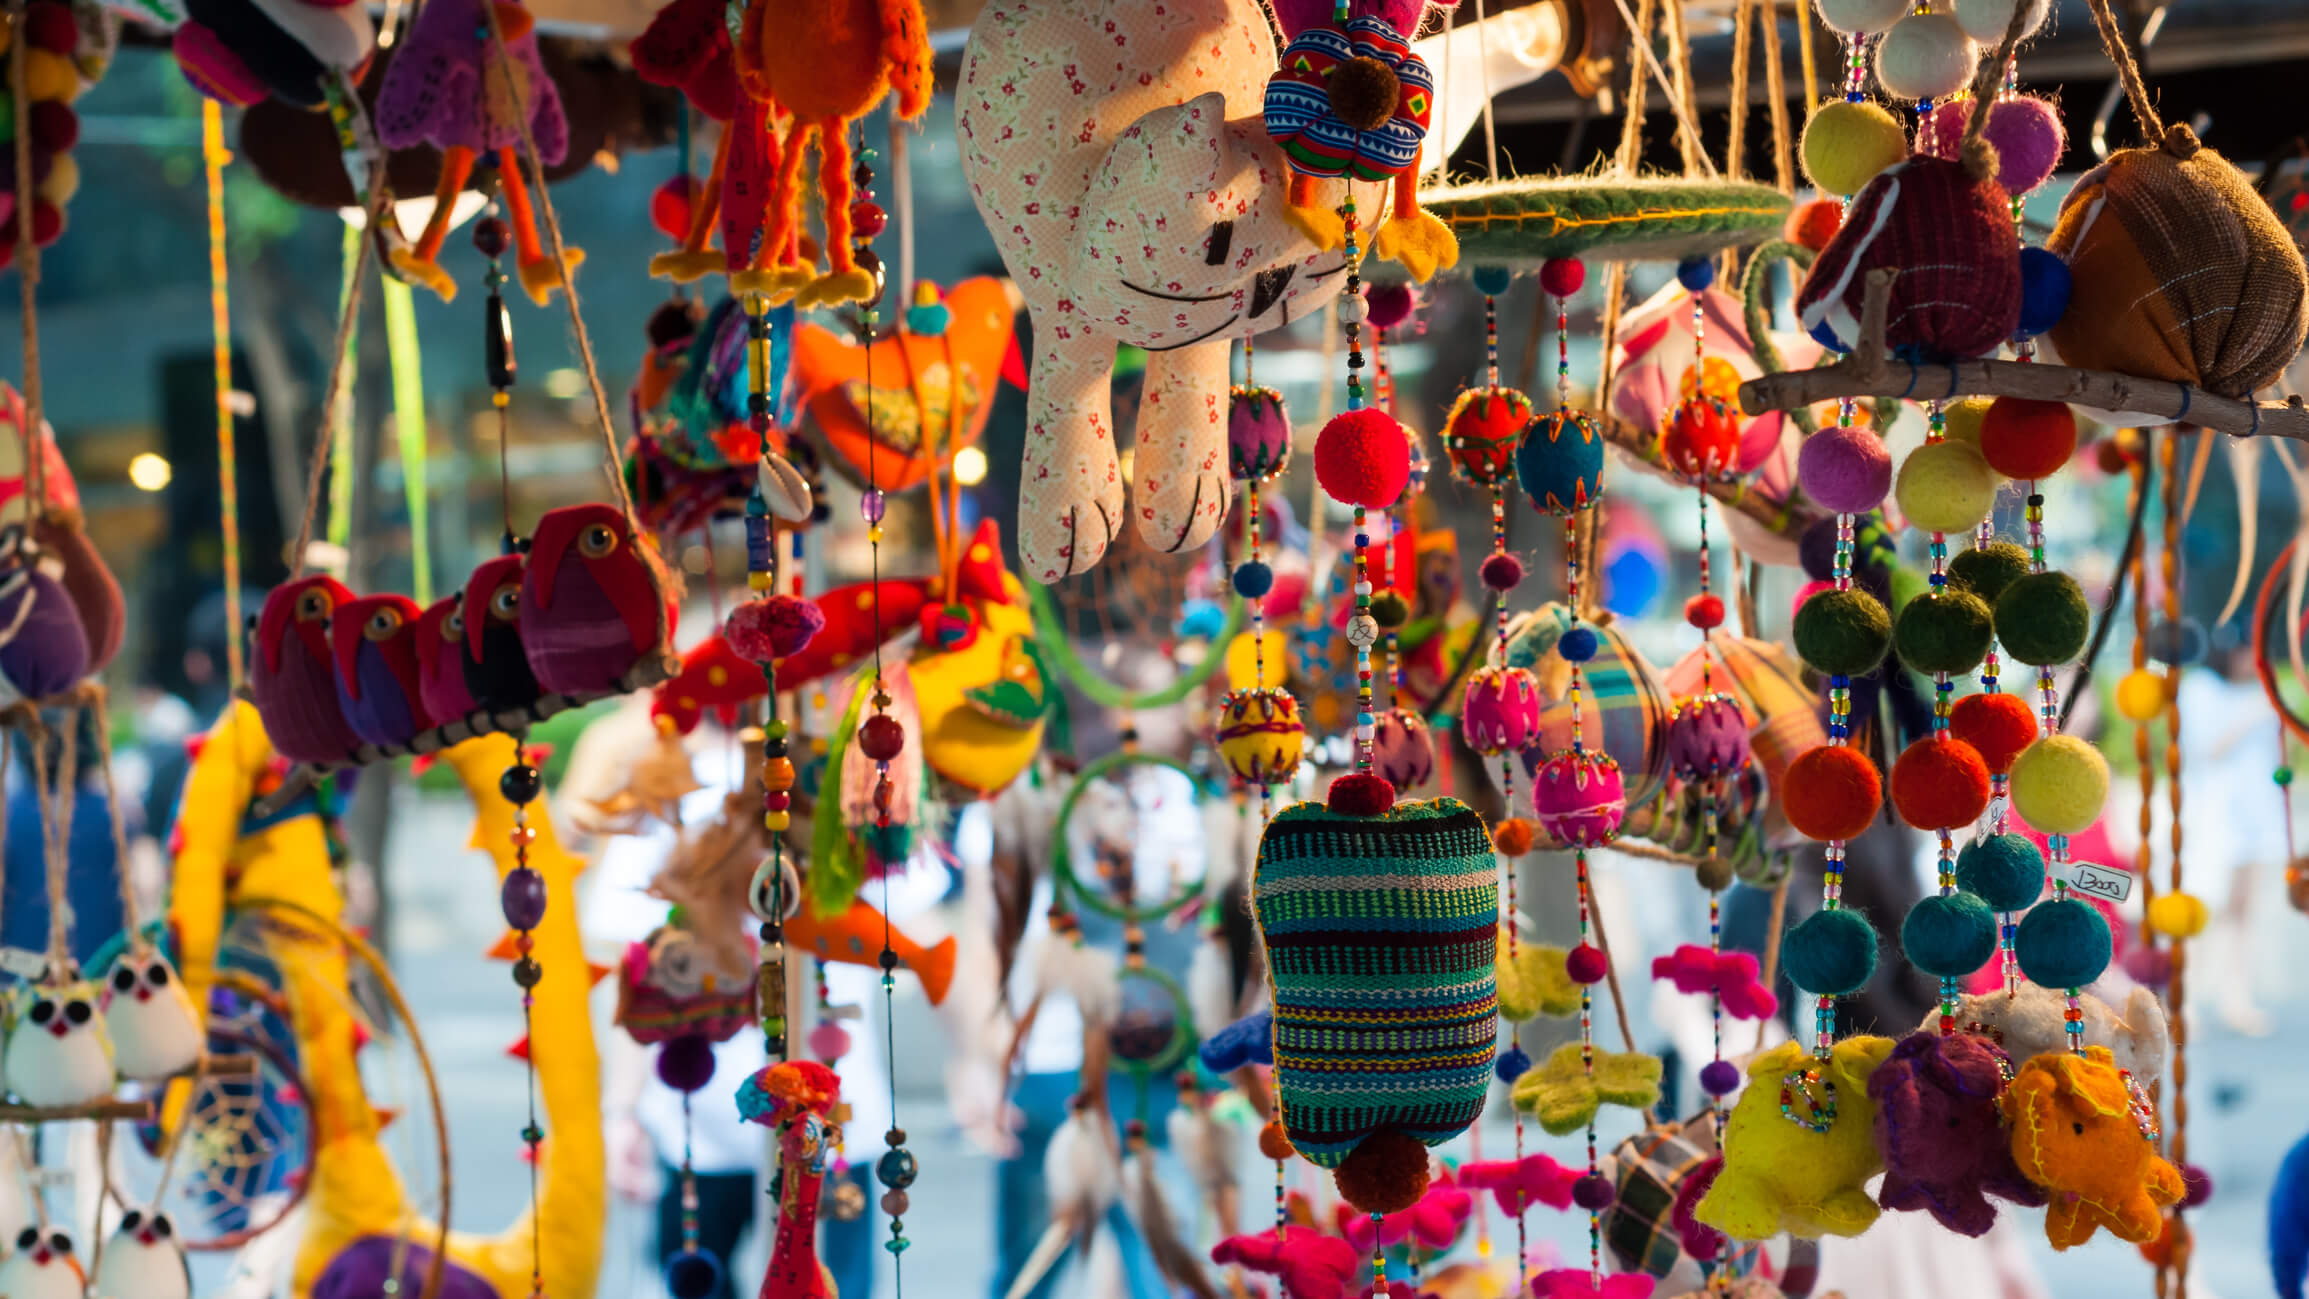 Hanging dolls at the flea markets in Seoul - shopping in Seoul